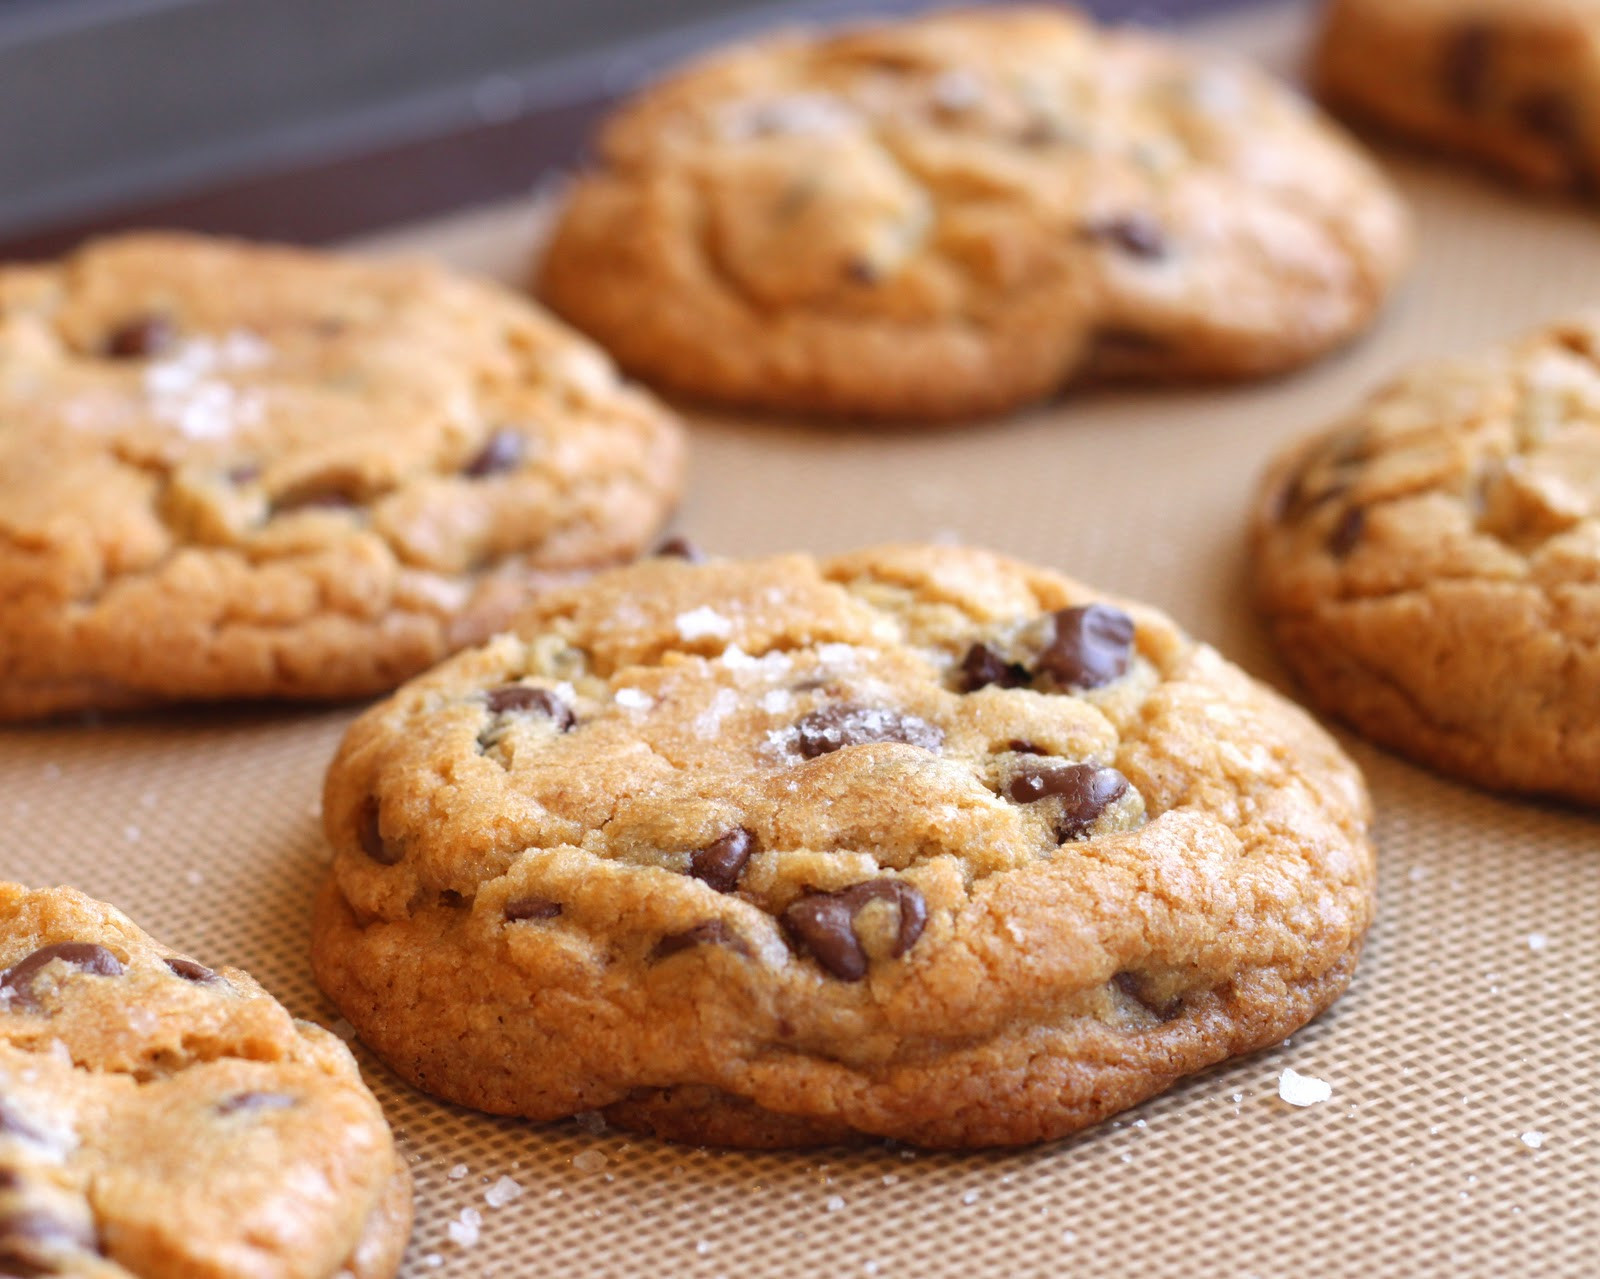 Chocolate Chip Cookies Allrecipes  best chocolate chip cookie recipe in the world